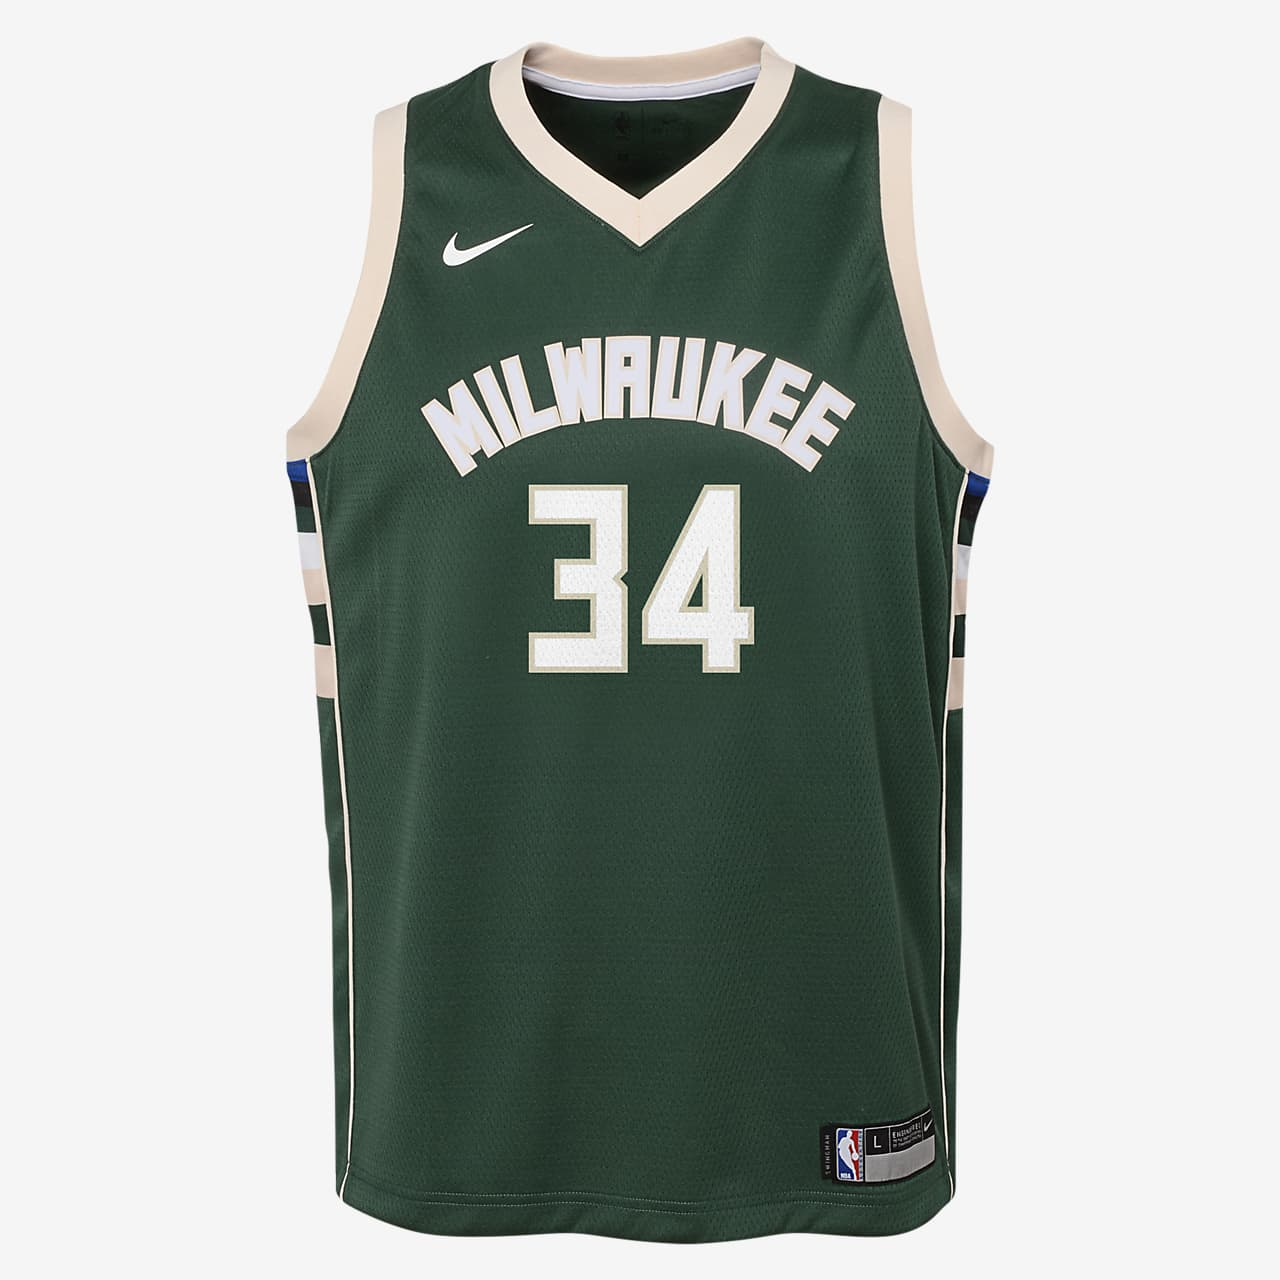 Giannis Antetokounmpo Milwaukee Bucks Nike Icon Edition Swingman NBA-jersey voor kids